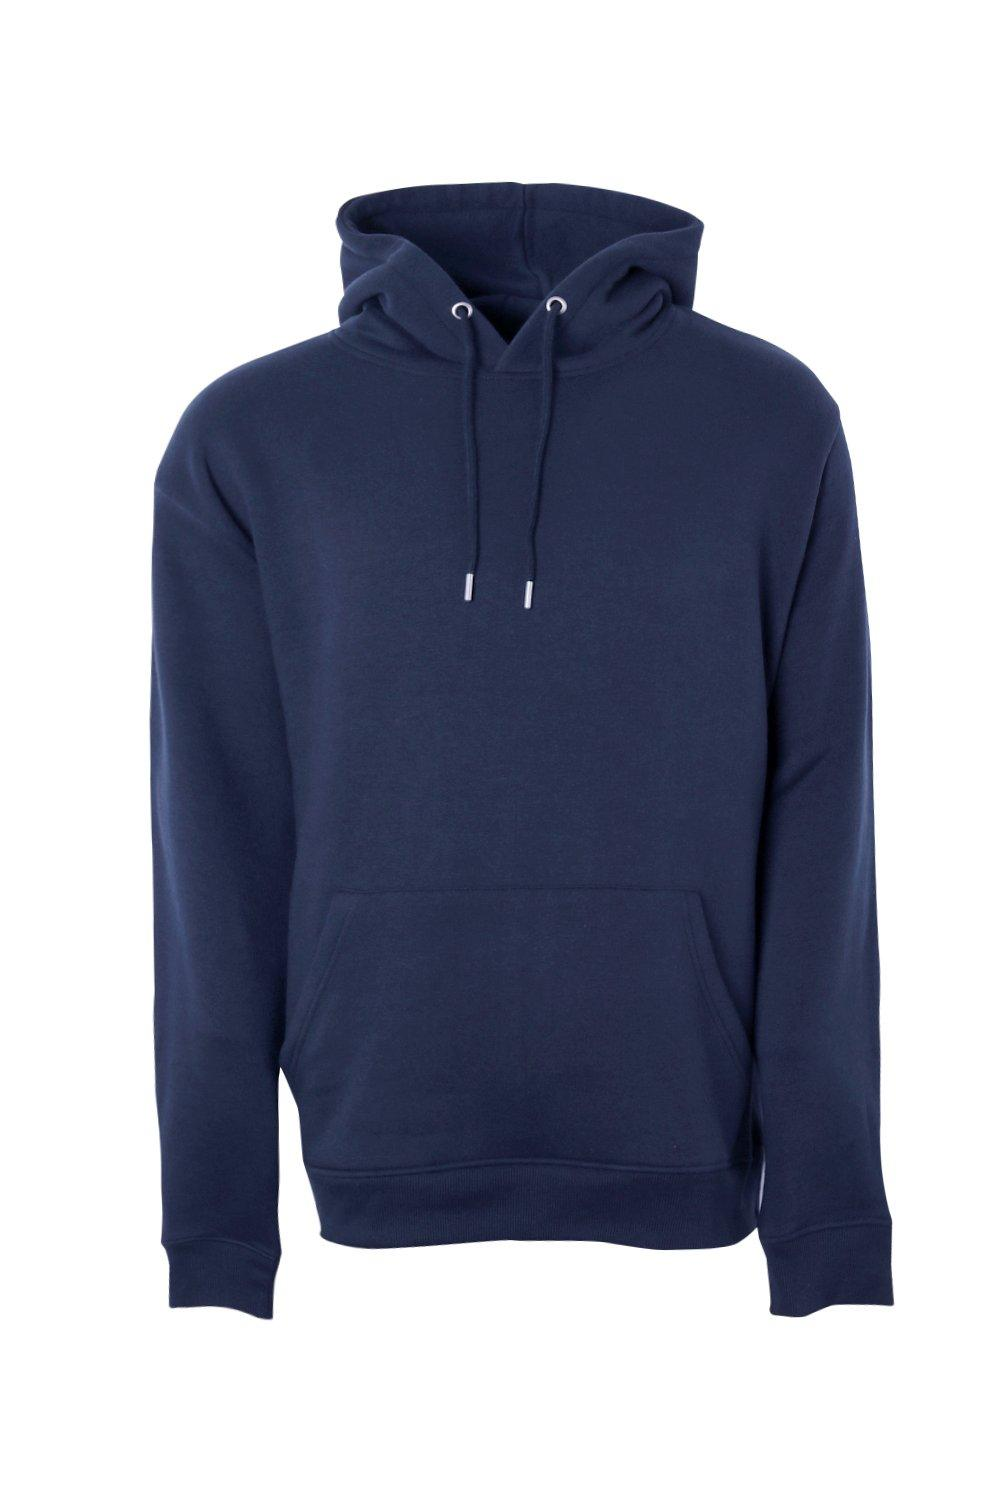 boohooMAN navy Big And Tall Basic Over The Head Hoodie